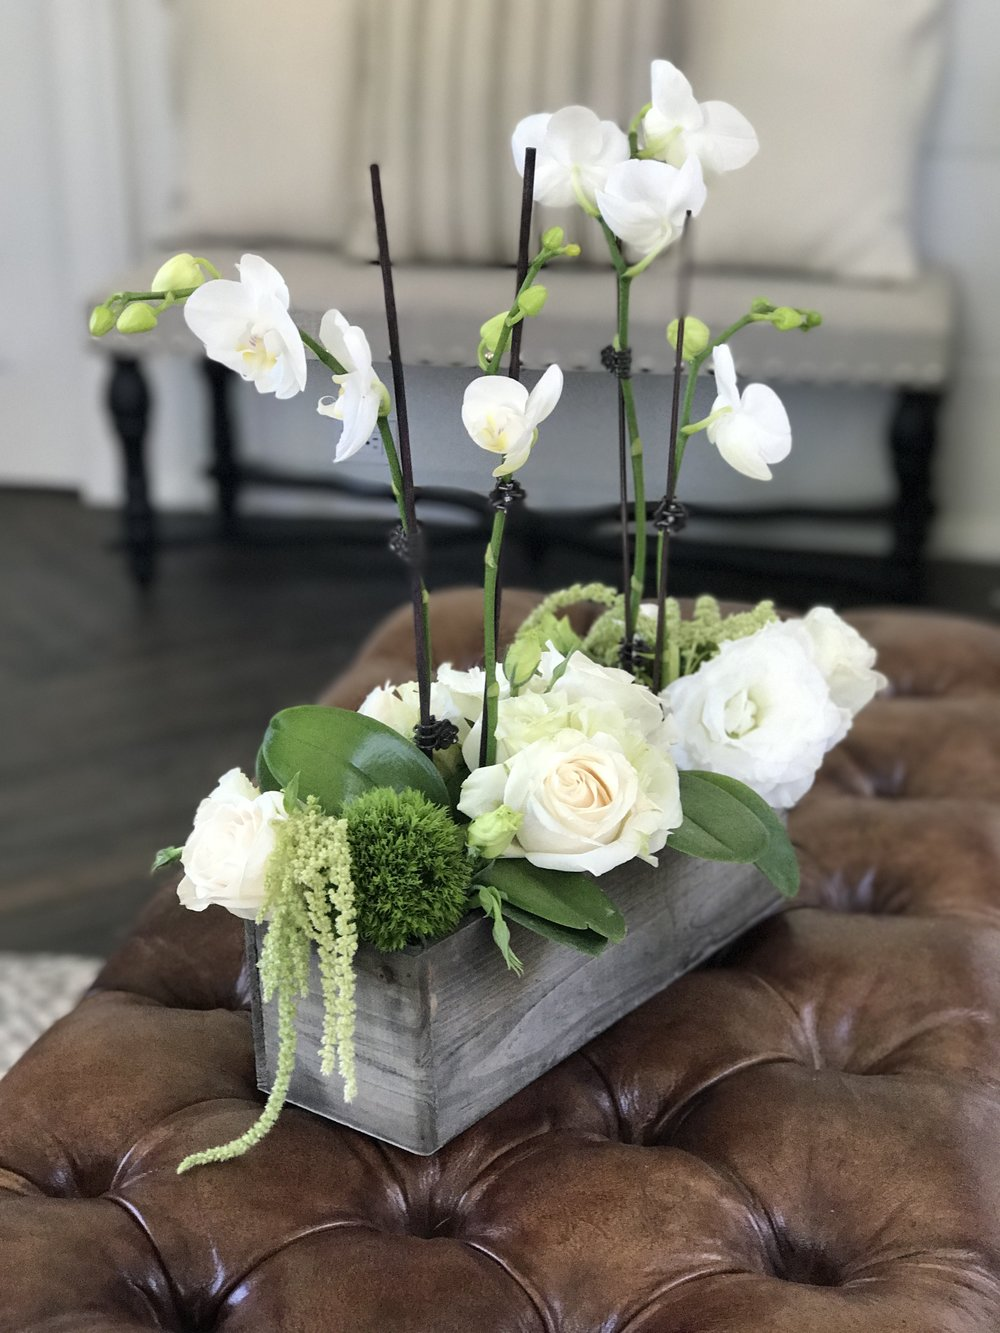 I made one extra arrangement for our house!